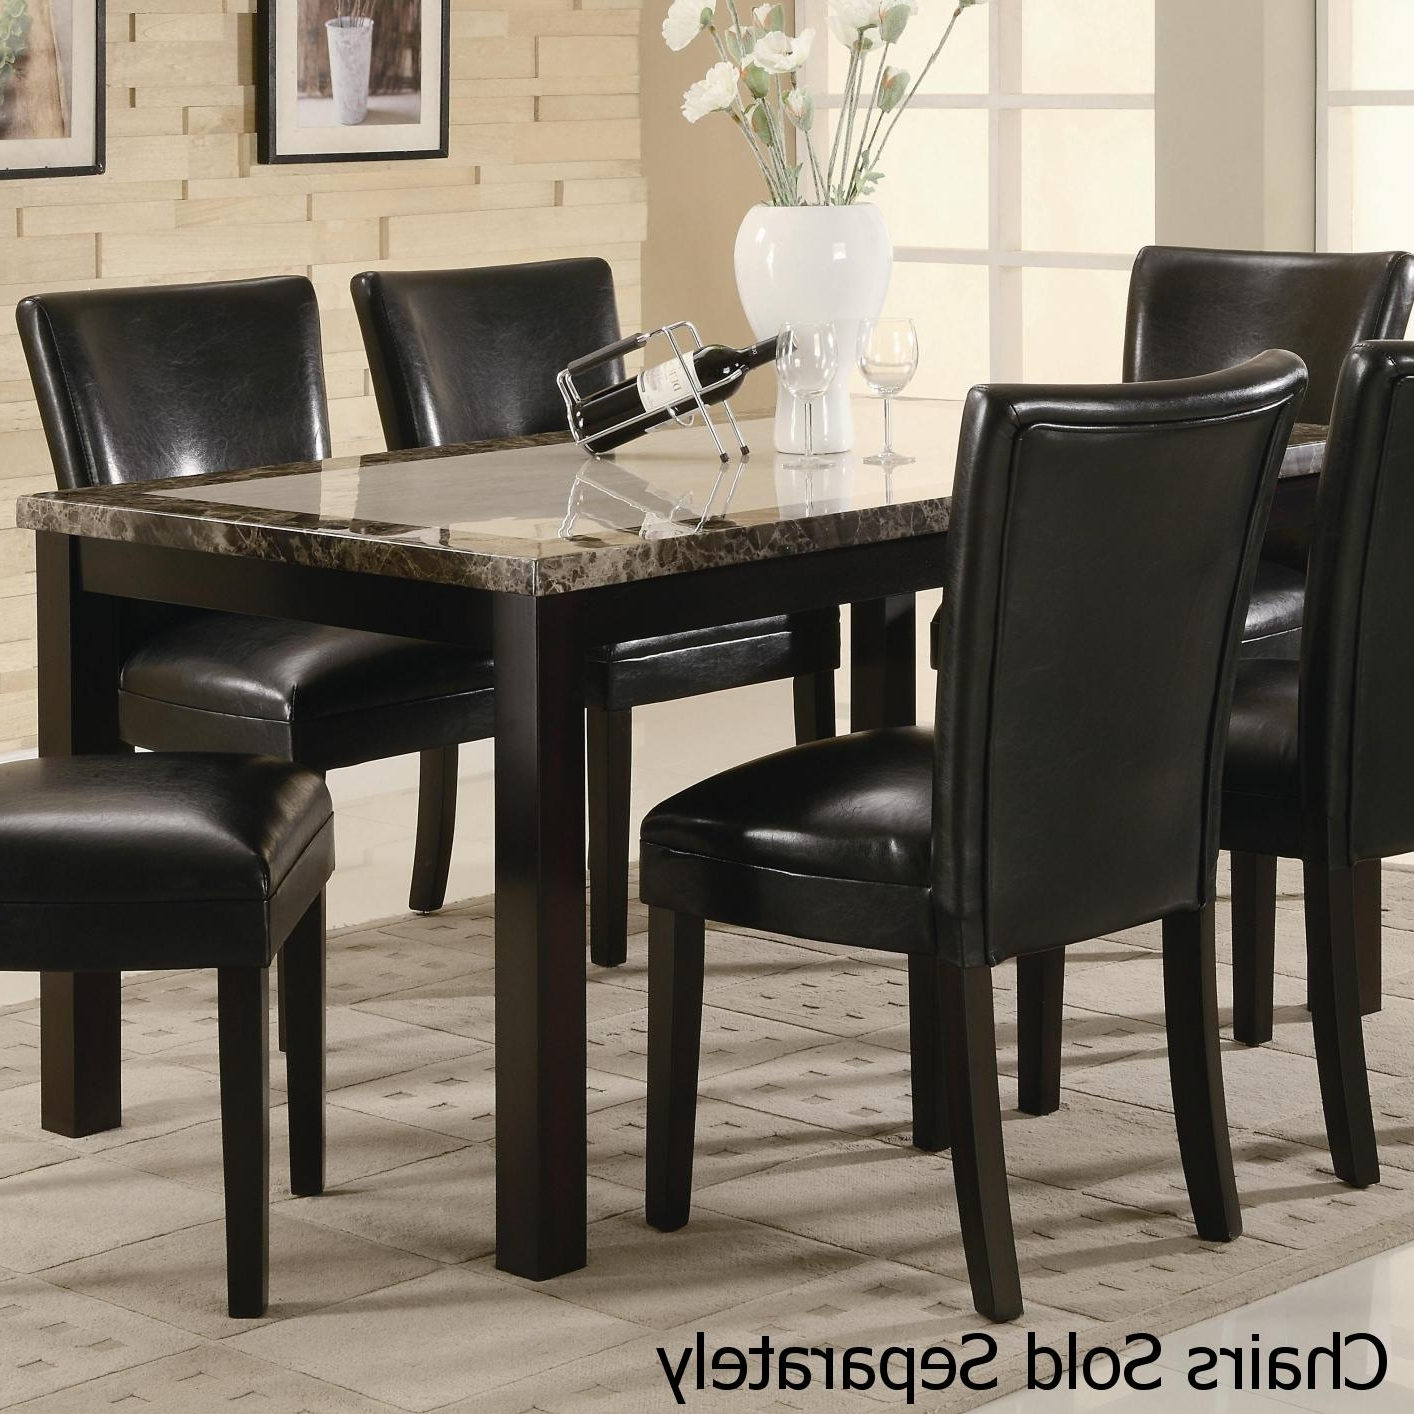 Most Recent Dark Brown Wood Dining Tables Intended For Brown Wood Dining Table – Steal A Sofa Furniture Outlet Los Angeles Ca (Gallery 5 of 25)